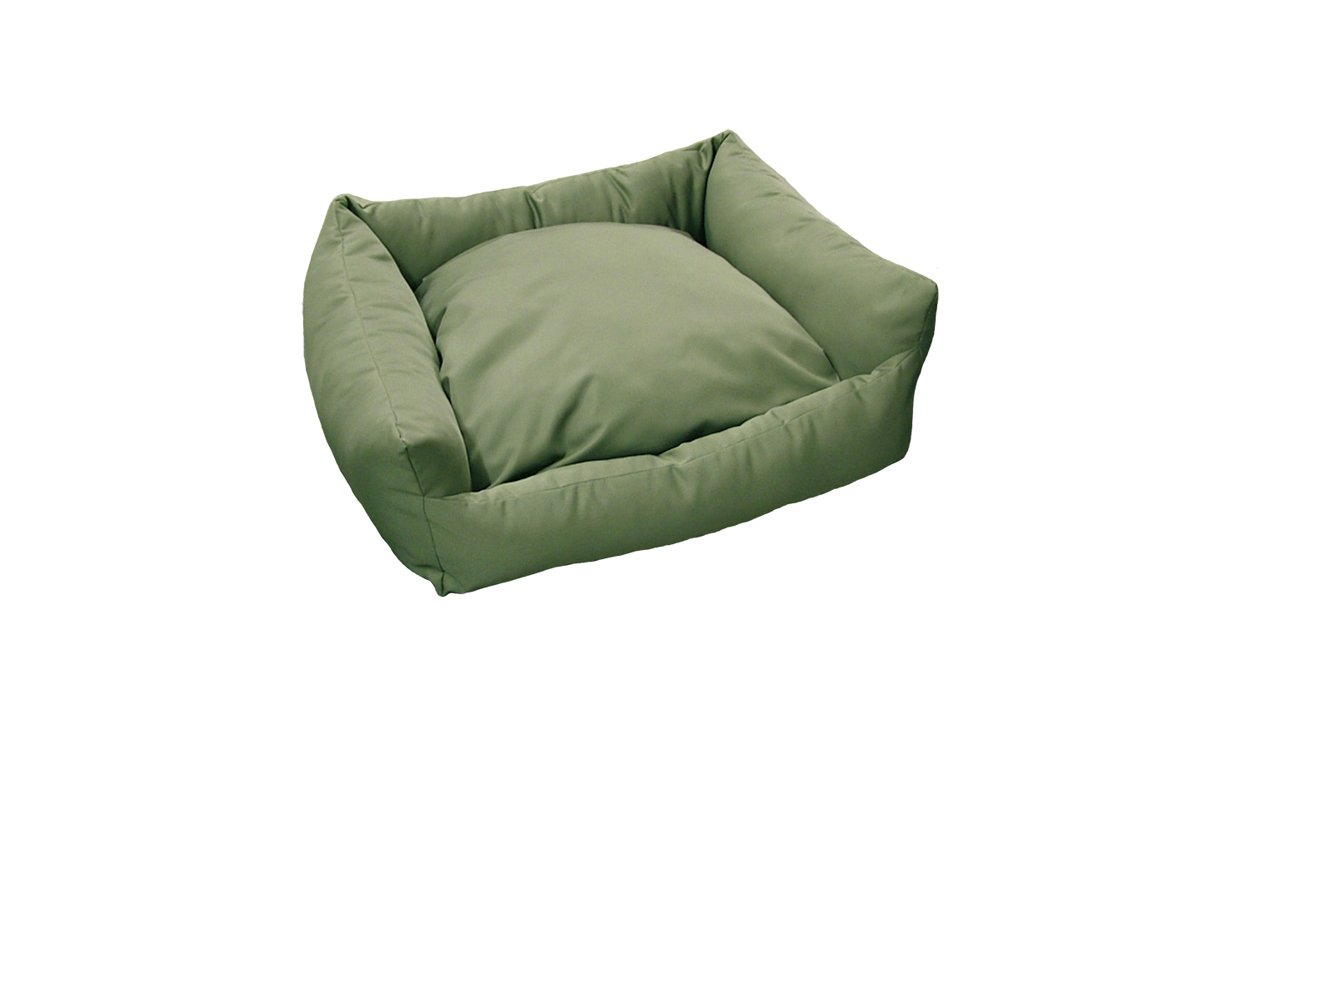 Green 56 x 56 cm Green 56 x 56 cm Dog & Co Waterproof Square Dog Bed, 56 x 56 cm, Green